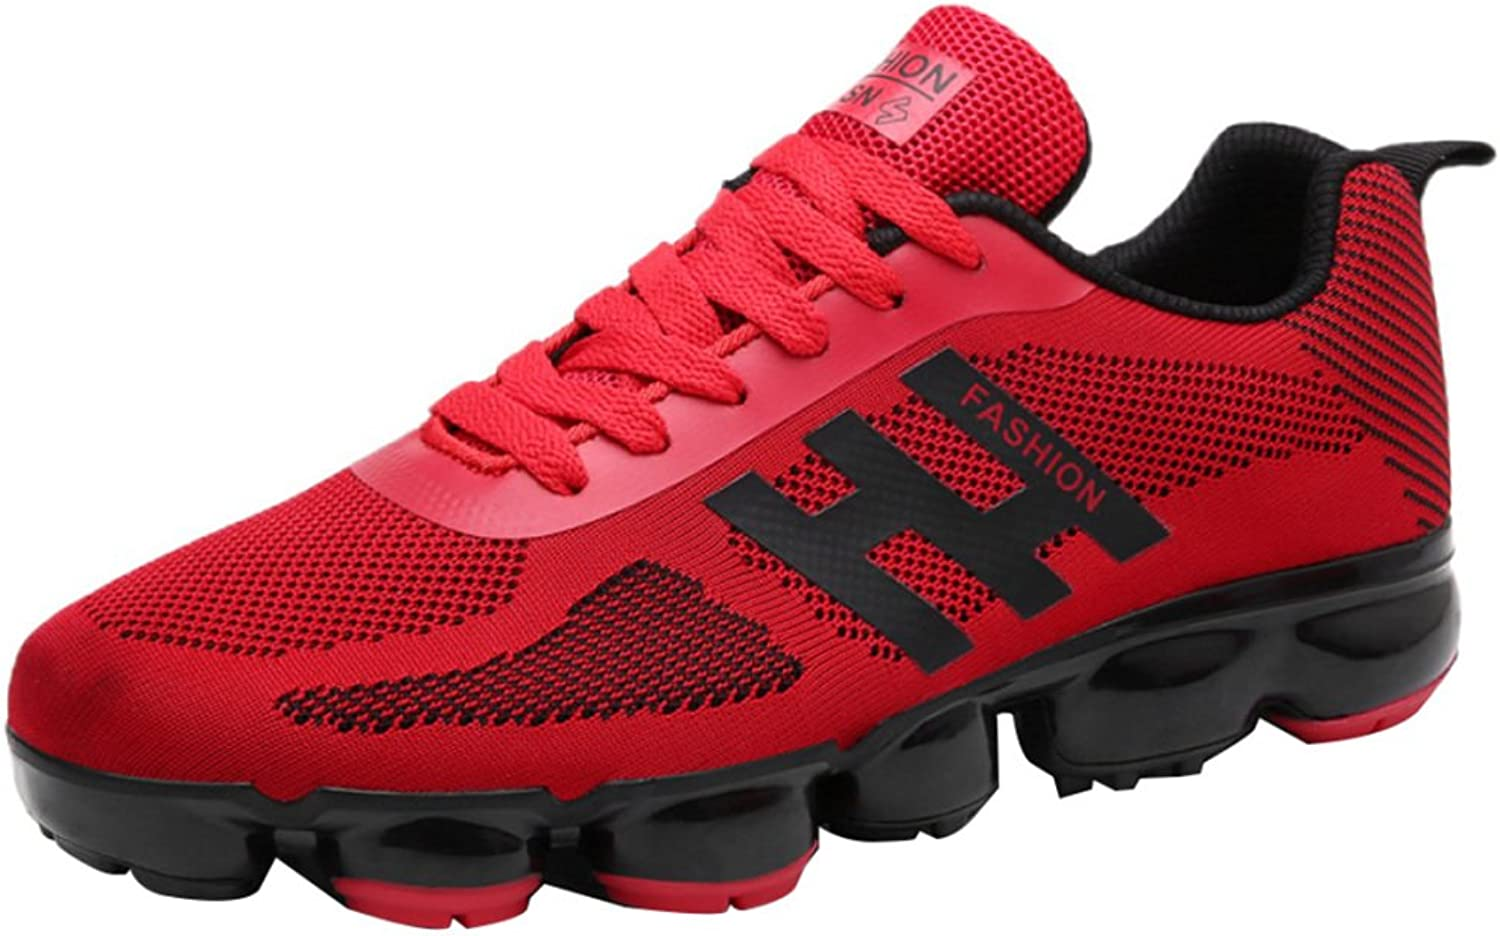 Men's Lightweight Running shoes Comfortable Breathable Sports shoes